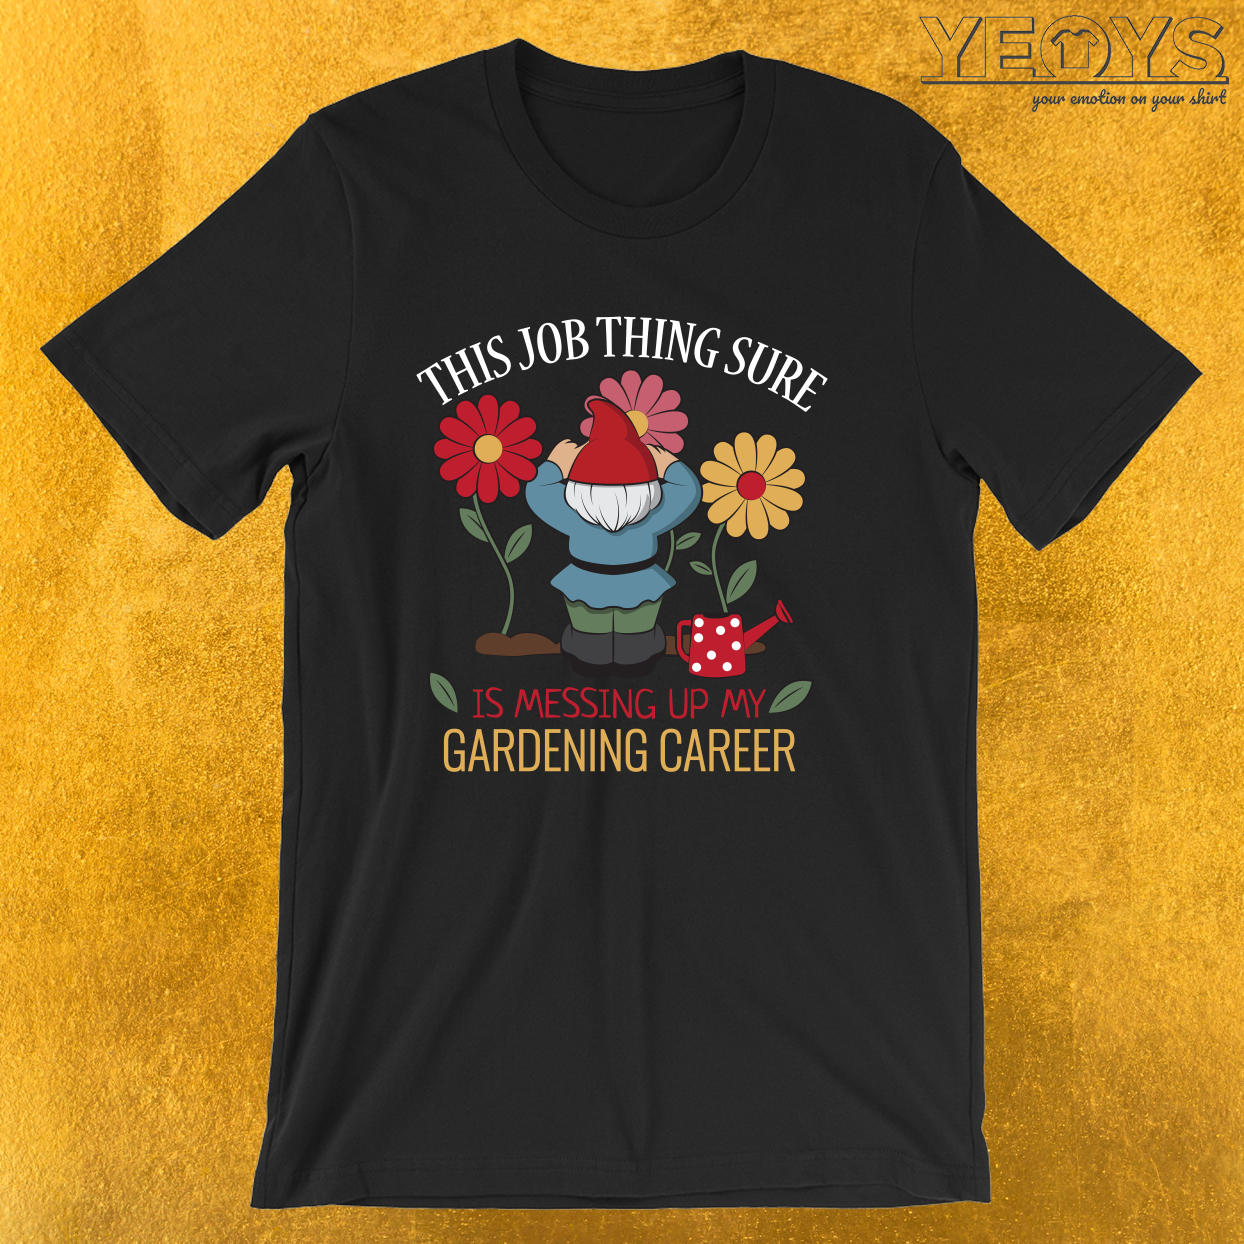 Job Thing Is Messing Up My Gardening Career – Funny Gnome Tee